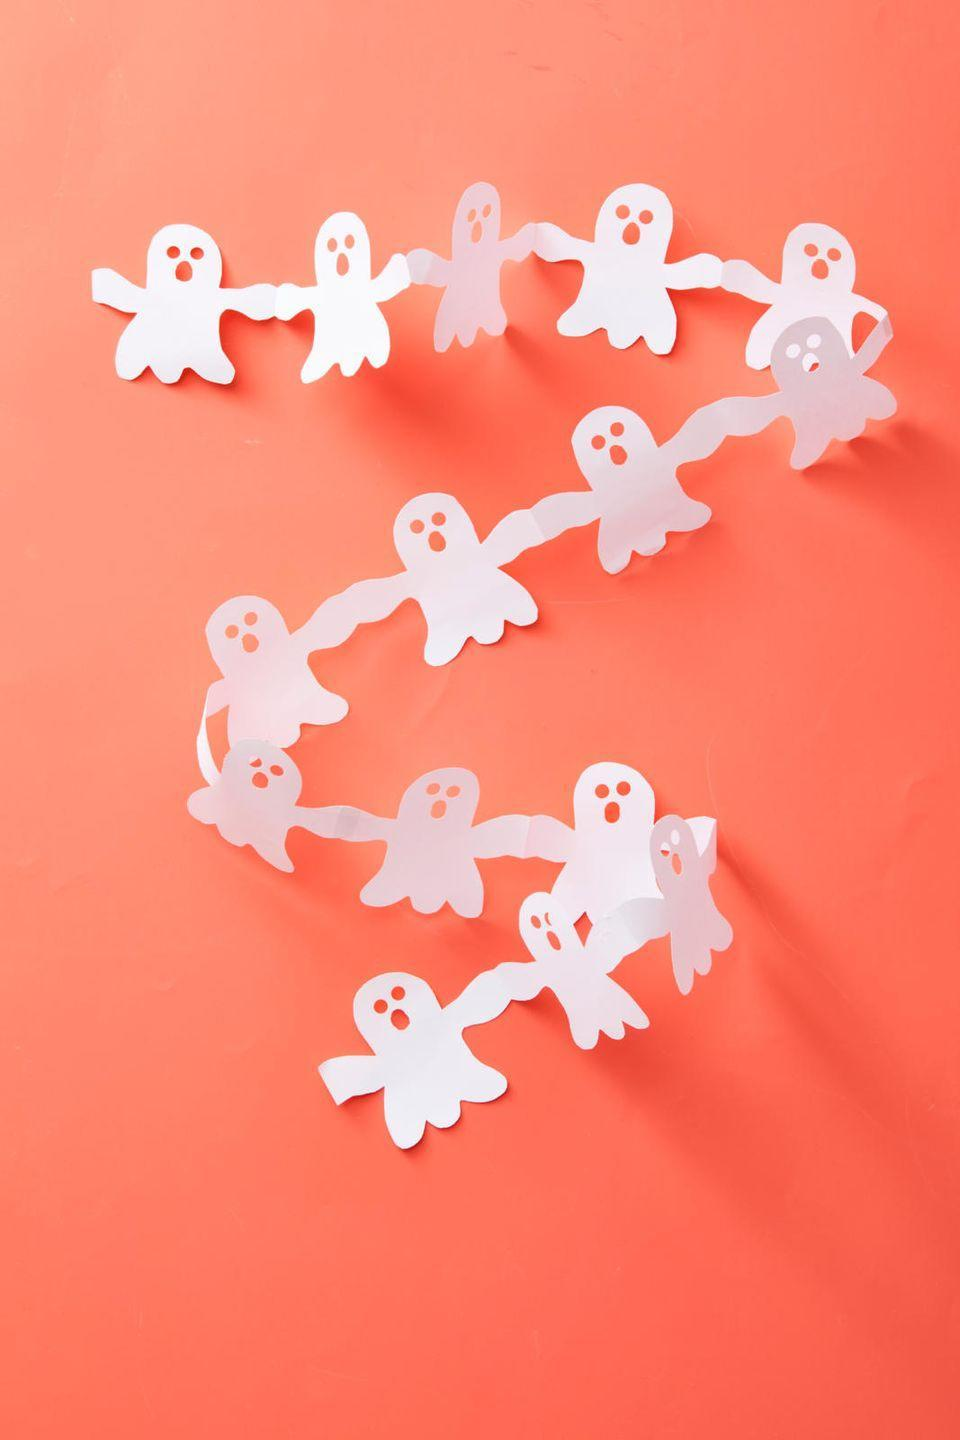 "<p>These cute ghosts make easy decor for just about anywhere in your house. Start by accordion folding paper into approximately 3"" sections. Then, trace a ghost shape on the top piece, making sure it has arms that connect to the edges of the paper, and cut out the shape. Repeat with more paper if you want to make it longer, and attach the strands with clear tape. </p><p><strong>RELATED:</strong> <a href=""https://www.goodhousekeeping.com/holidays/halloween-ideas/g421/halloween-decorating-ideas/"" rel=""nofollow noopener"" target=""_blank"" data-ylk=""slk:The Most Incredible Halloween Decoration Ideas"" class=""link rapid-noclick-resp"">The Most Incredible Halloween Decoration Ideas </a></p>"